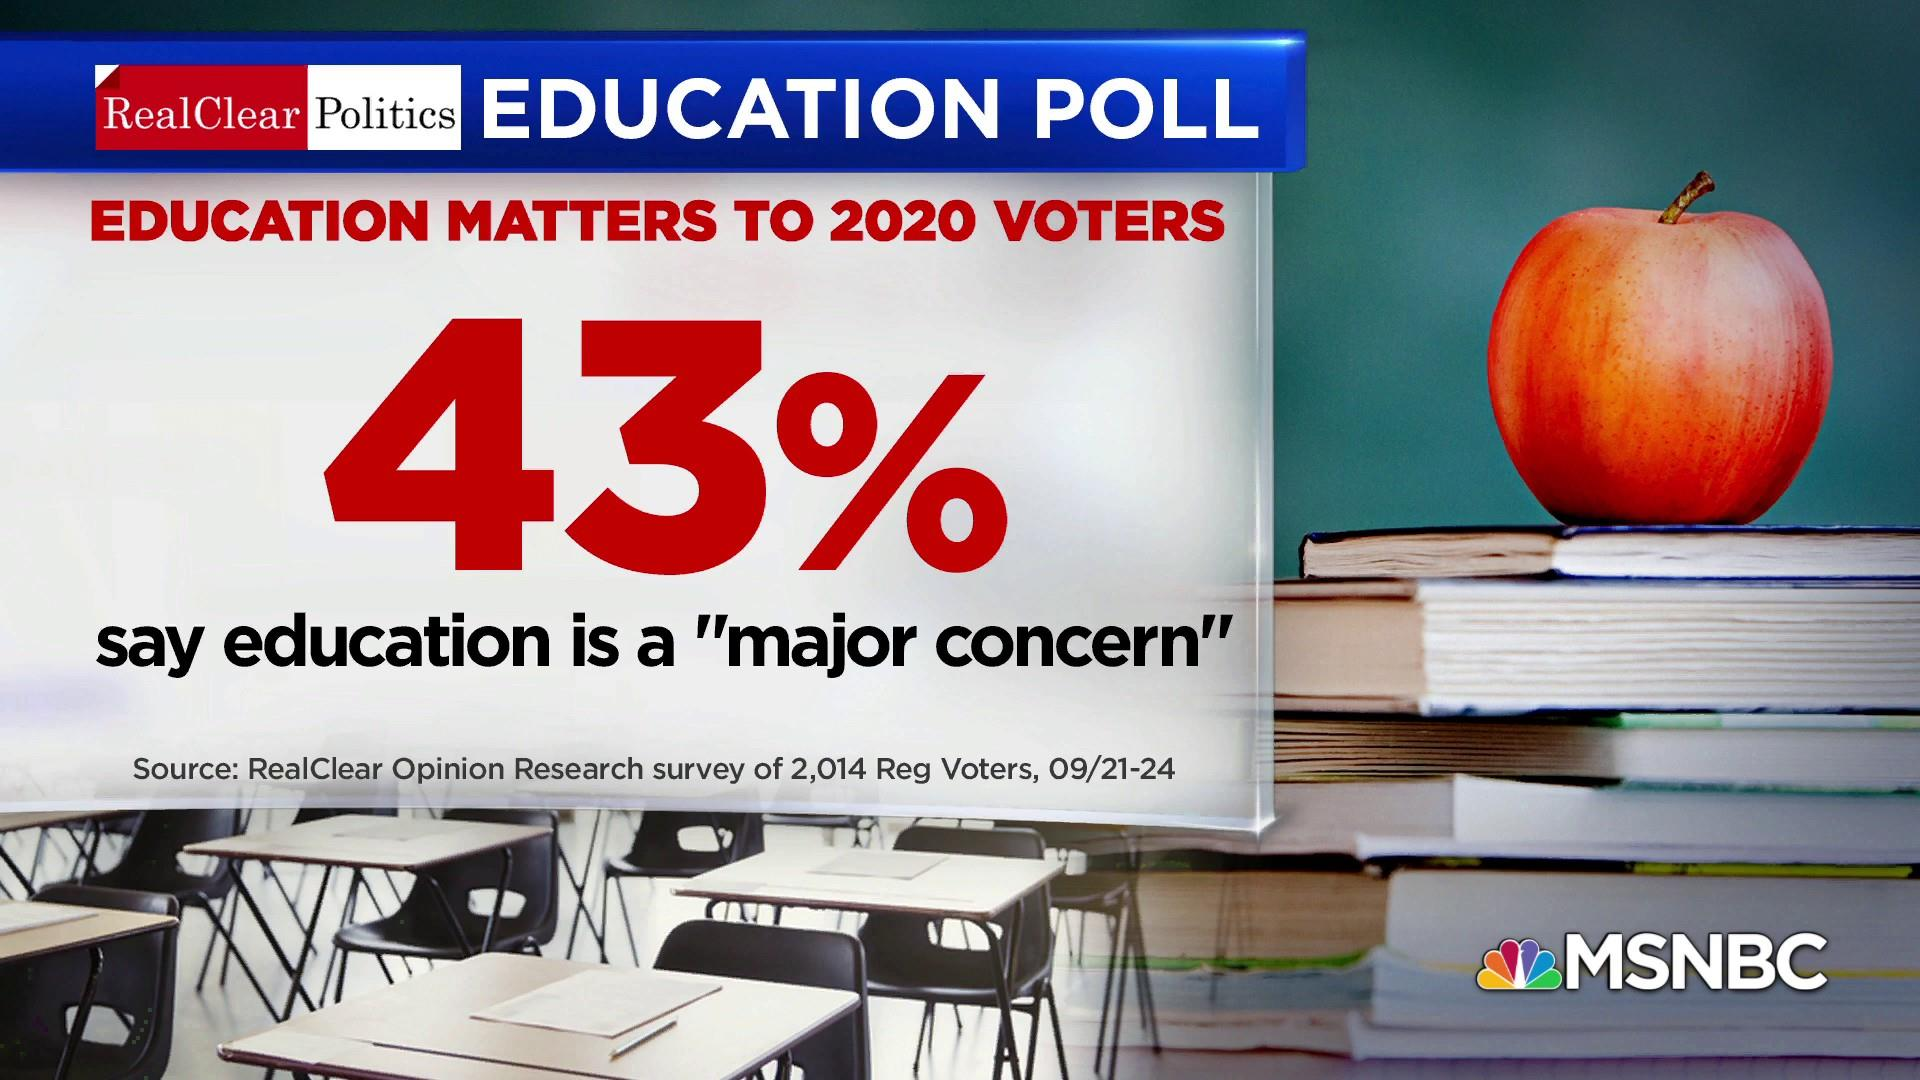 Polls show education is a 'major concern' for 2020 voters